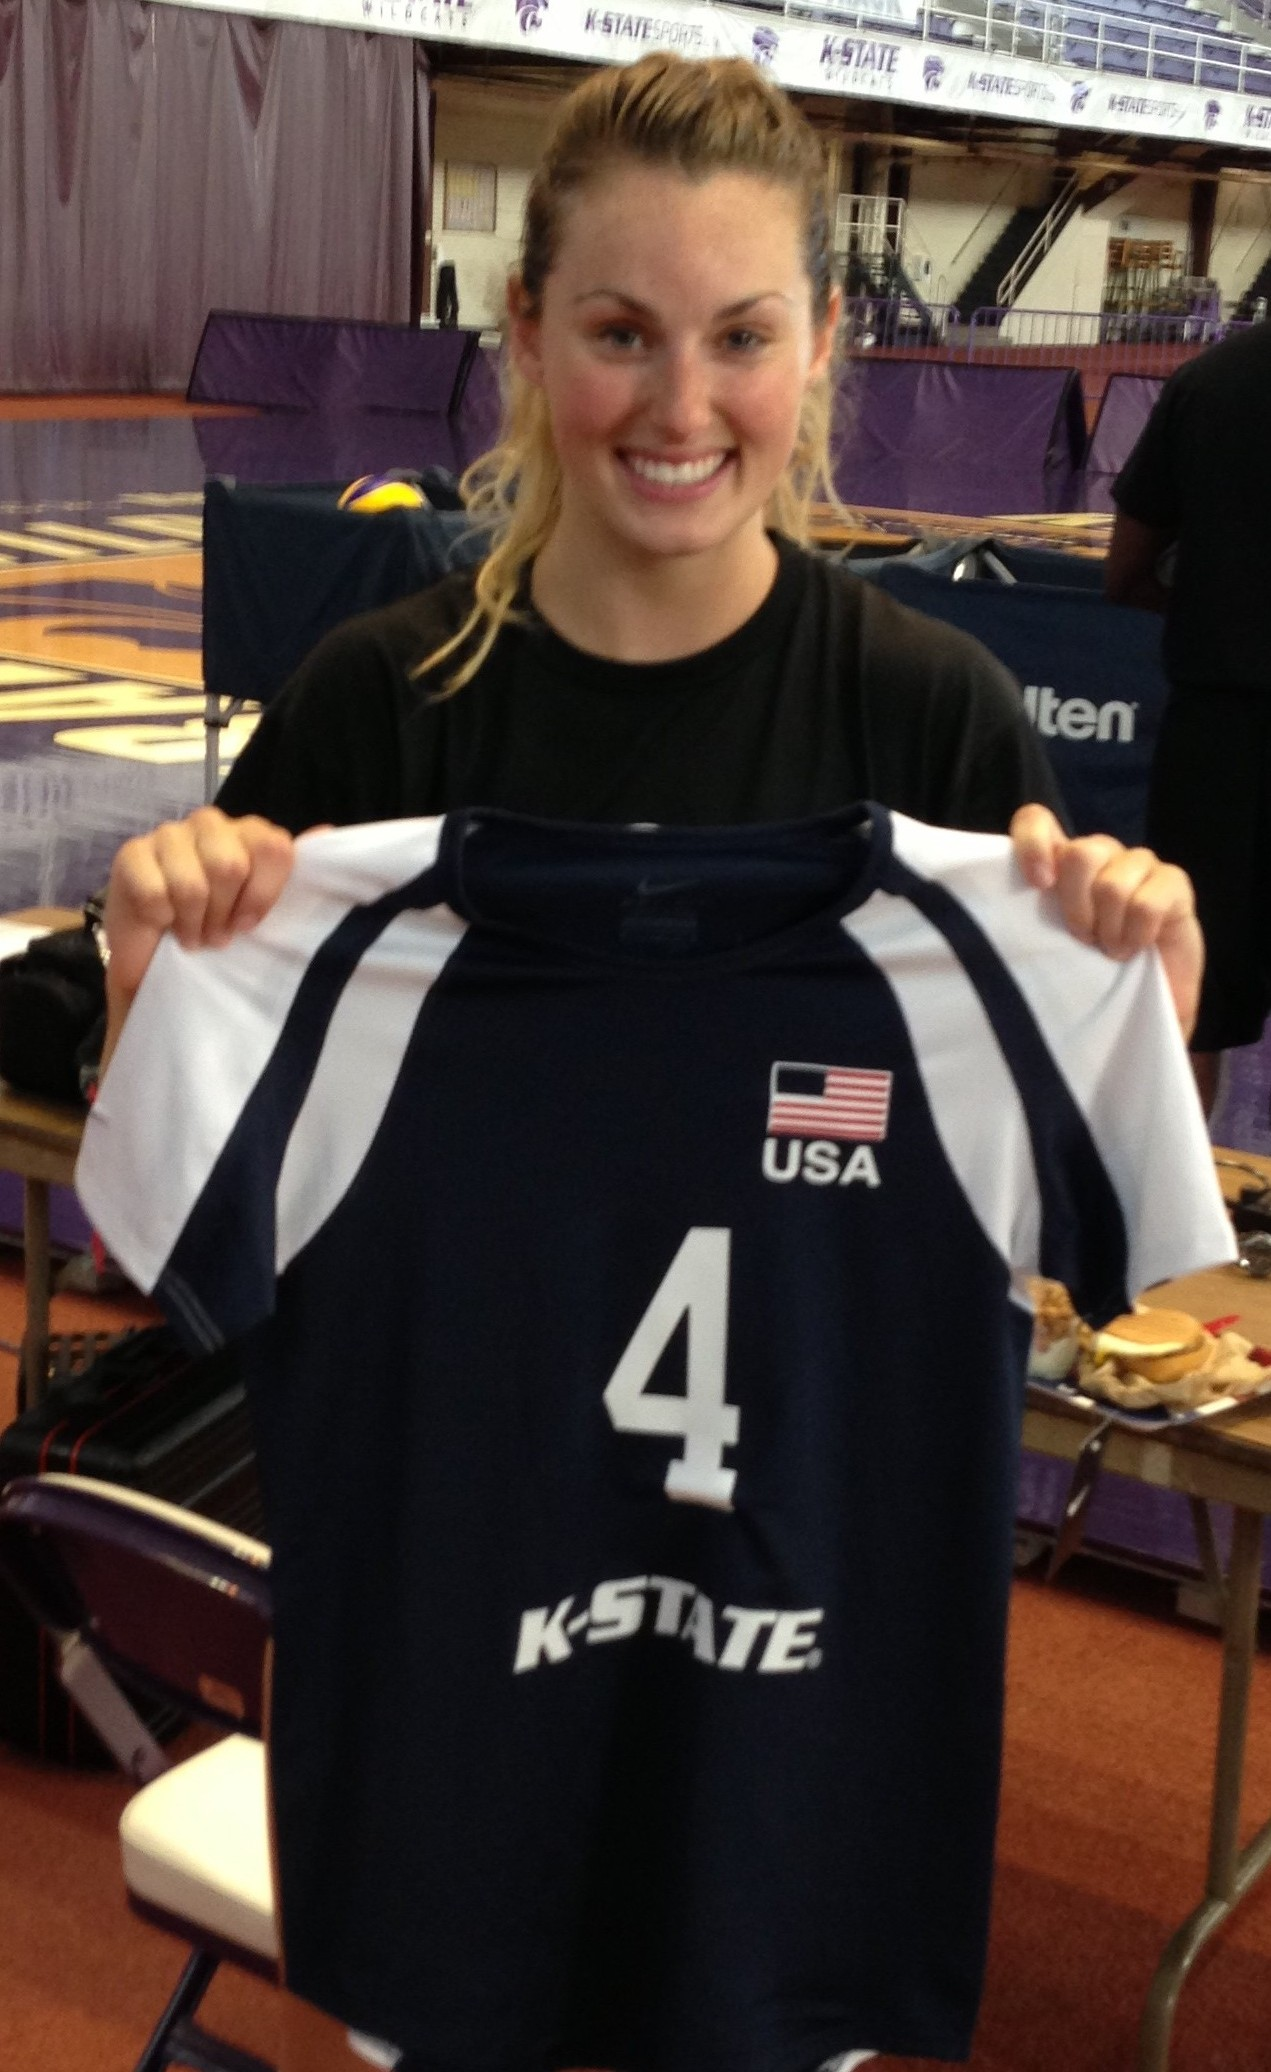 Manhattan native and K-State senior libero Tristan McCarty holds the Team USA jersey the Cats will wear in Russia.